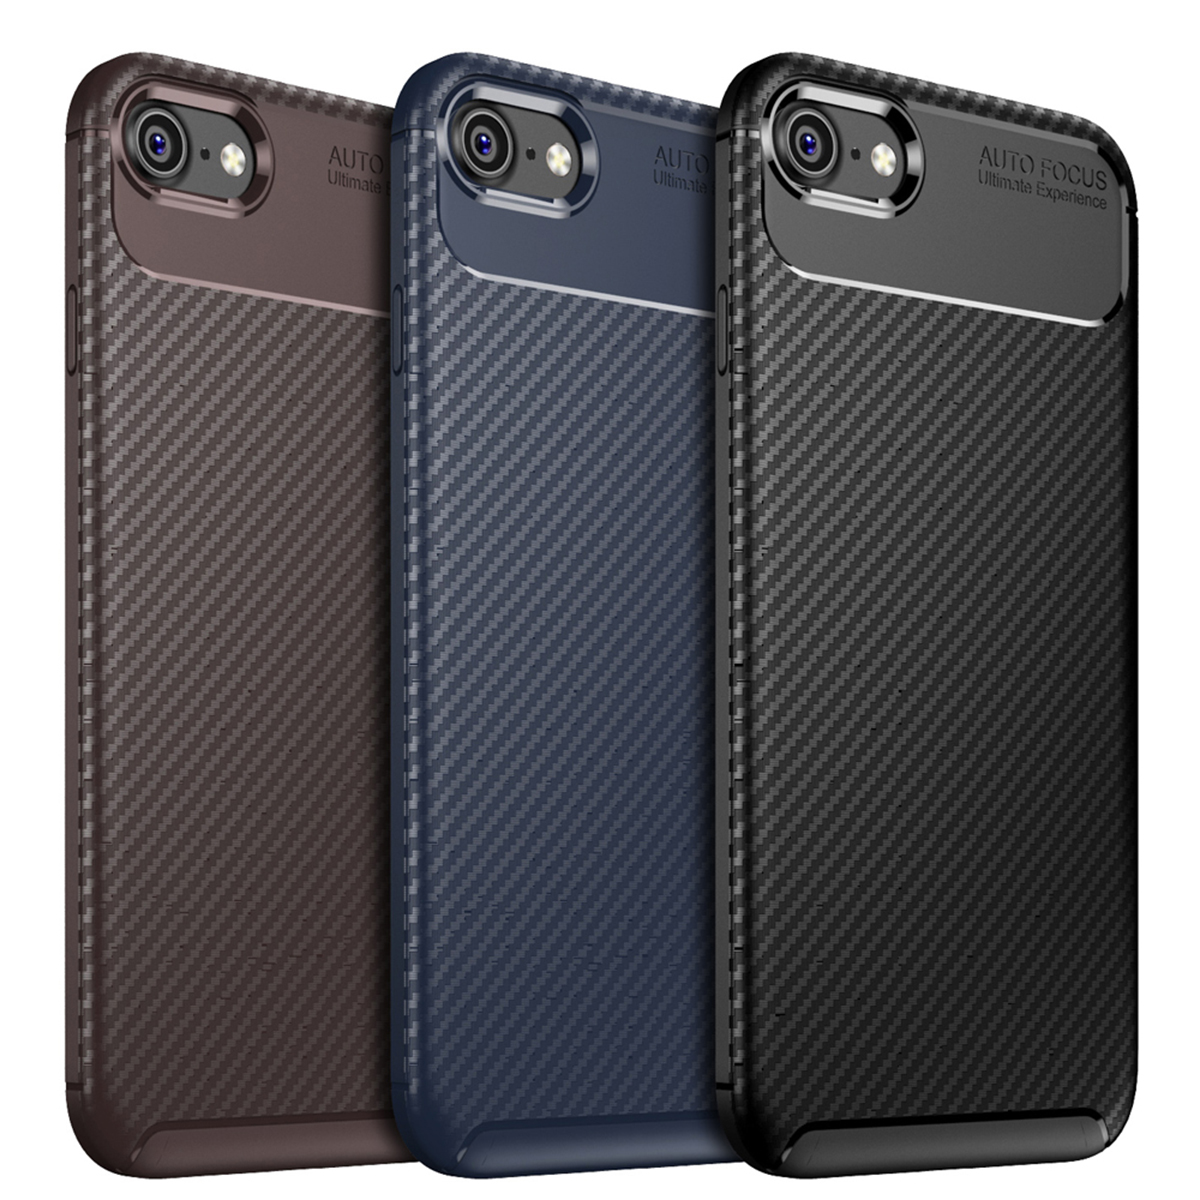 Case-for-iPhone-Carbon-Fibre-Soft-Cover-TPU-Silicone-Slim-11-X-XR-Max-8-7-6-Plus thumbnail 21